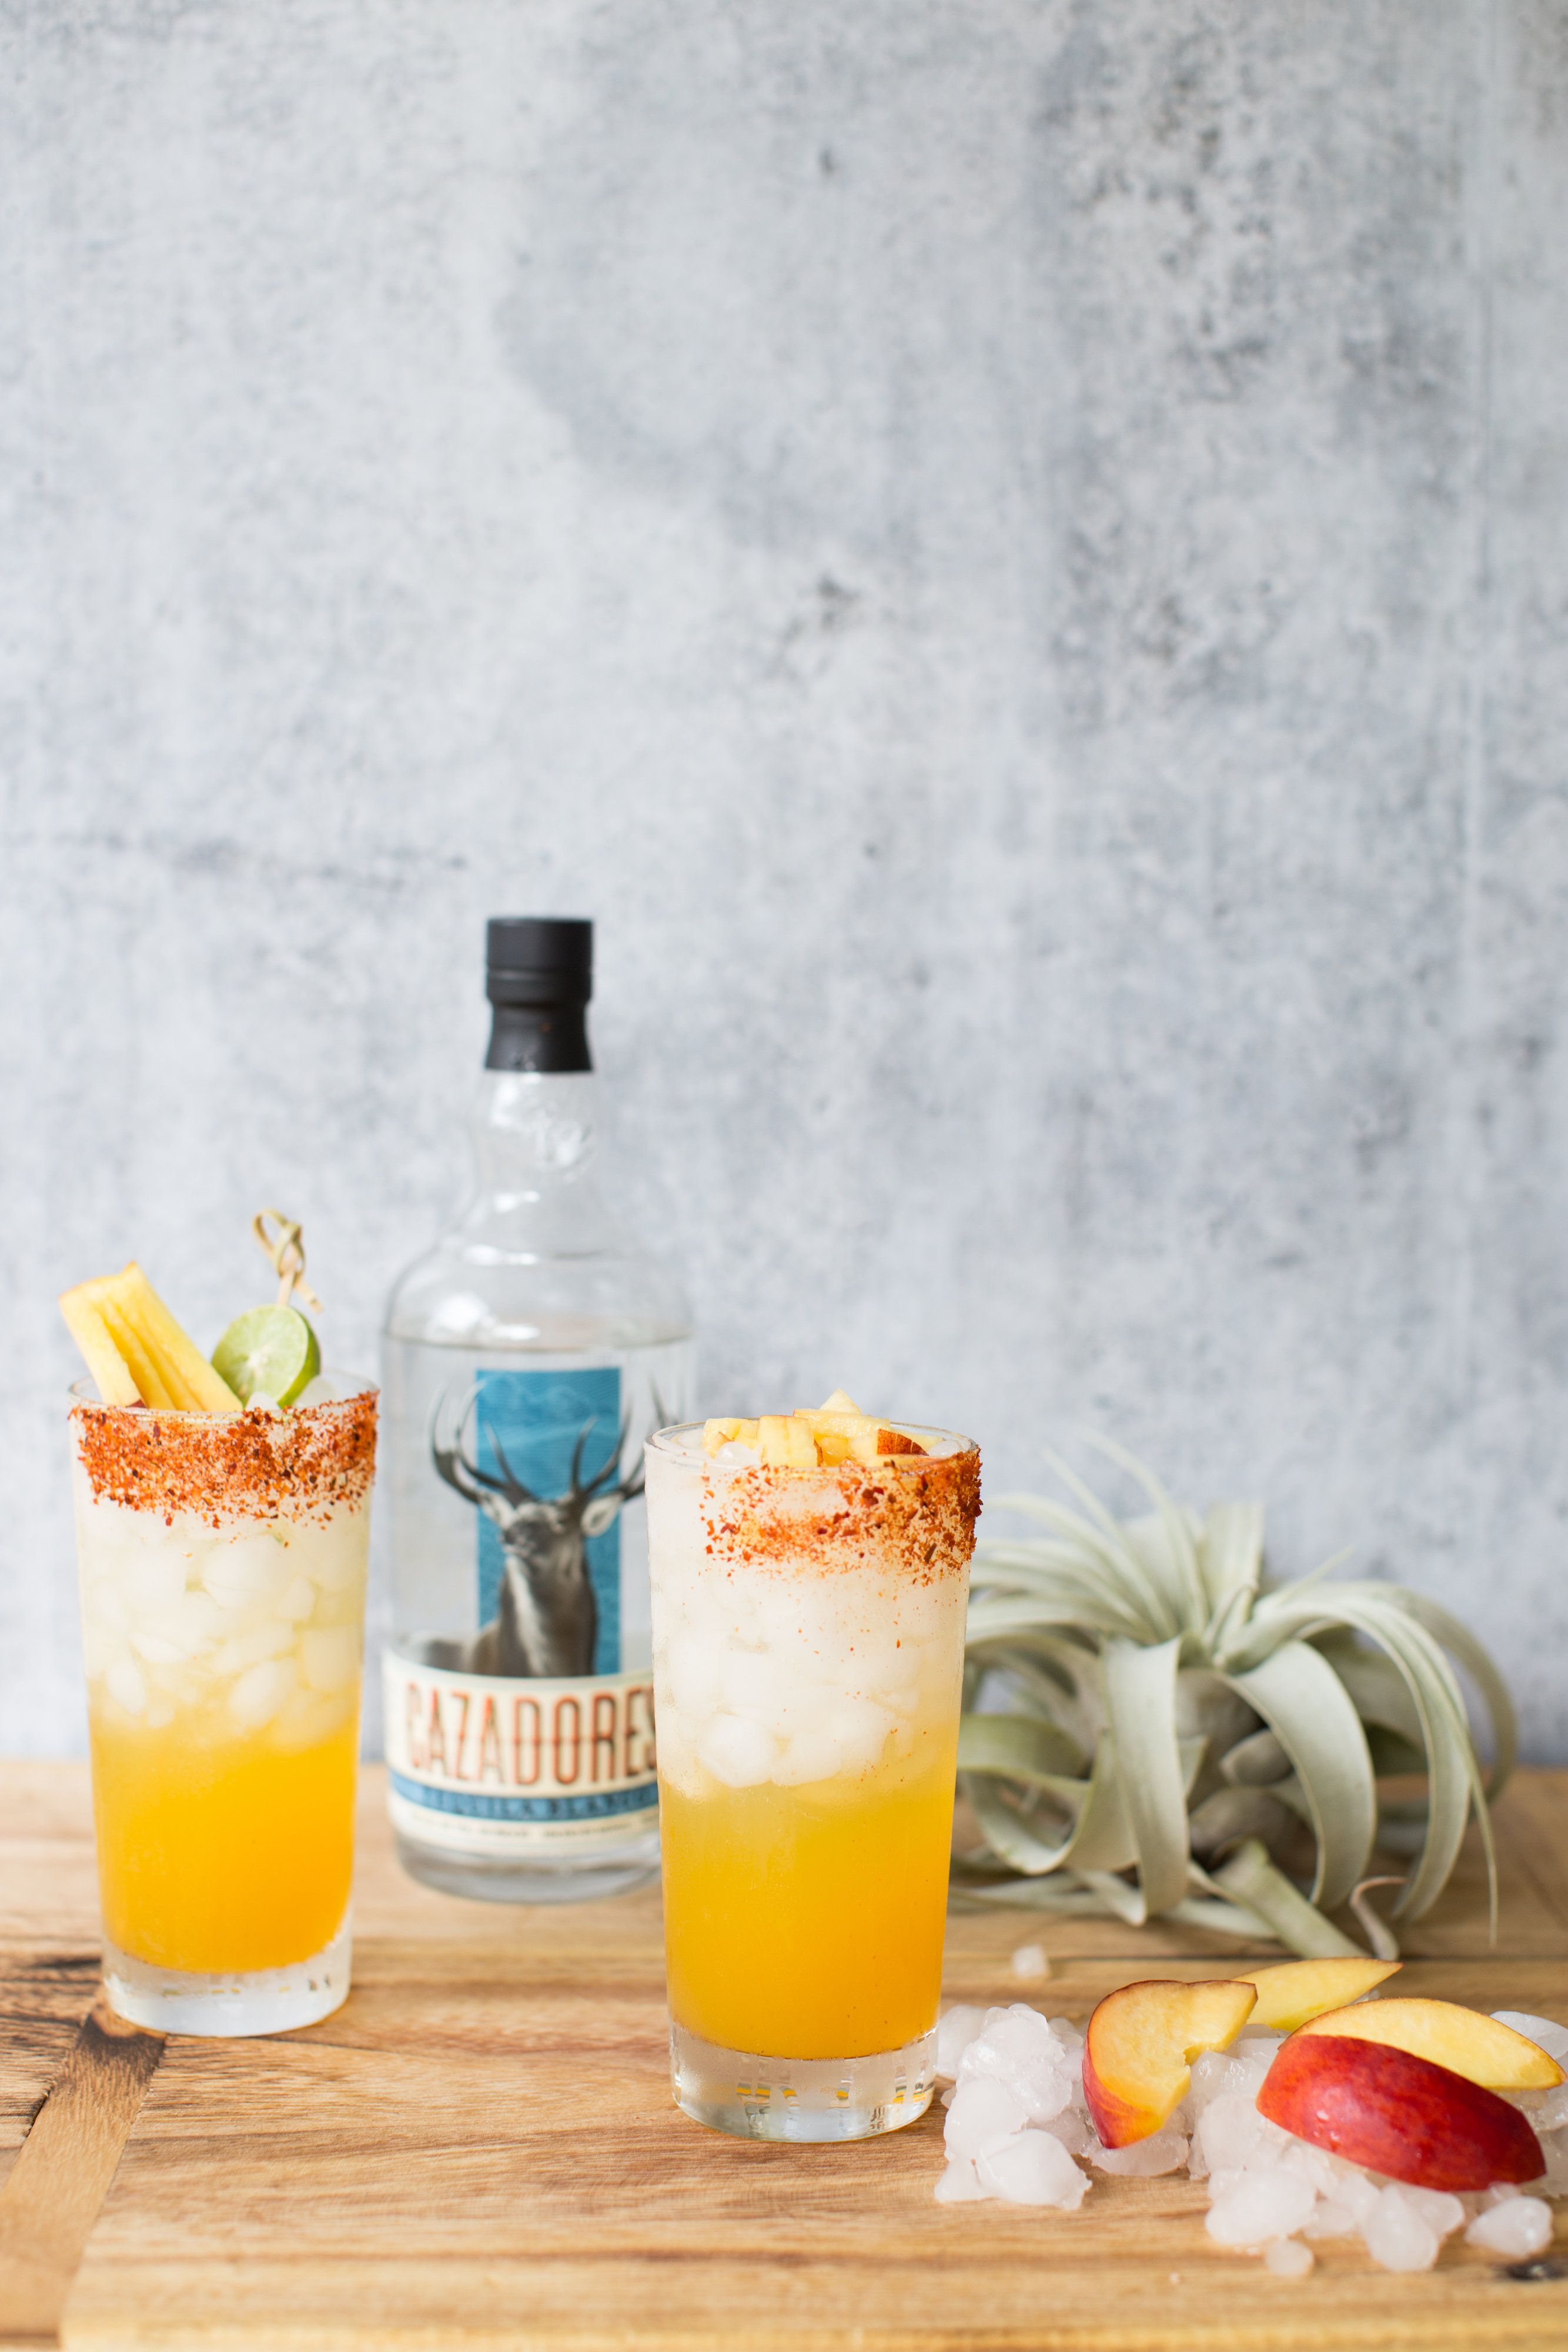 peach-paloma-tequila-cocktail-vianneyrodriguez